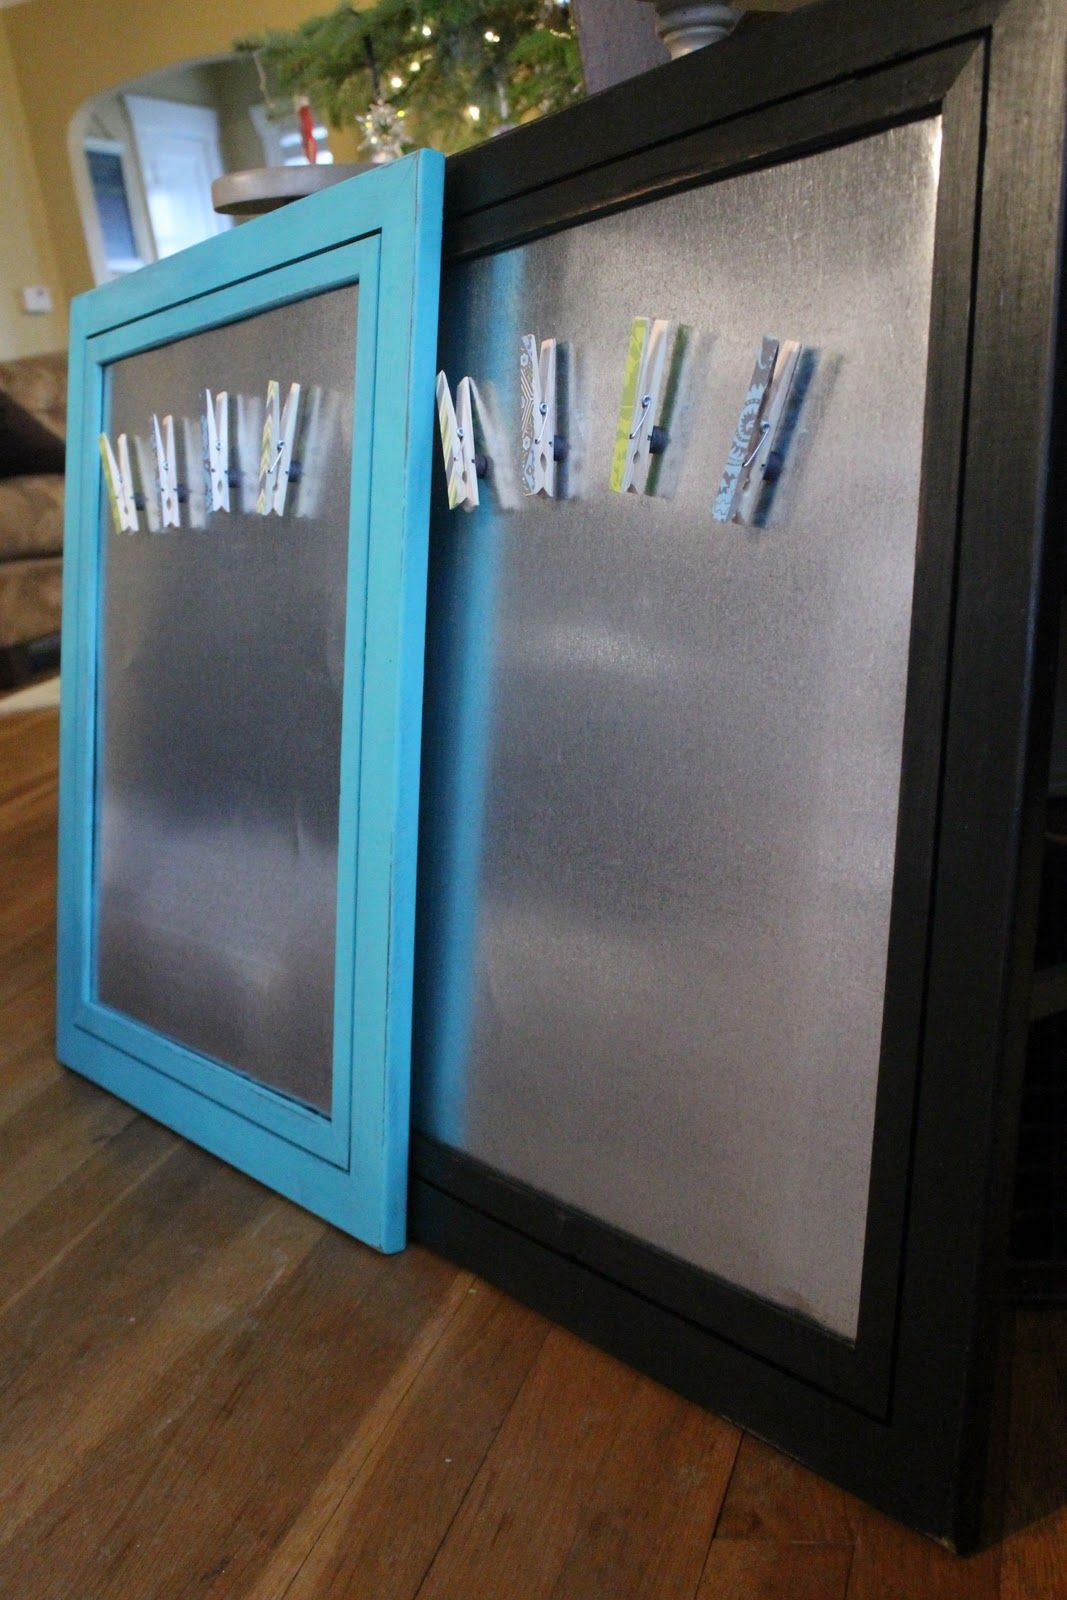 Diy Magnet Boards And Cute Clothespins Are Just Mod Podged With Some